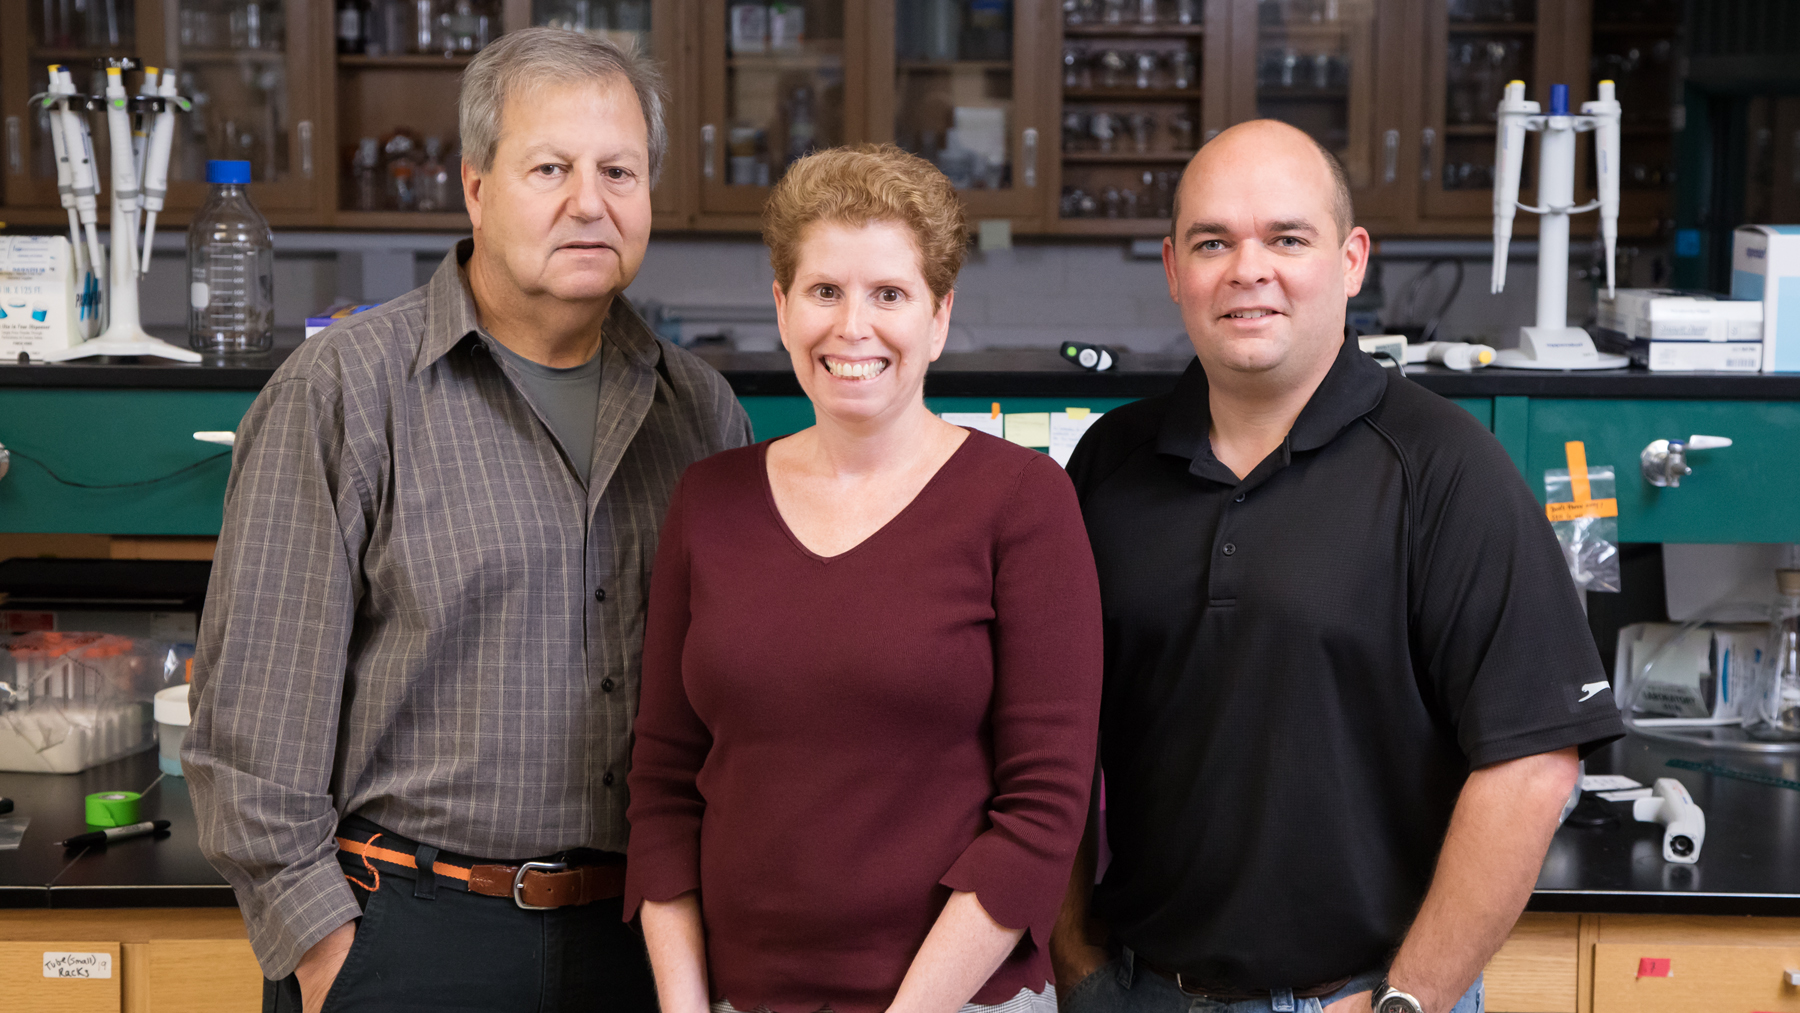 food science and human nutrition professor William G. Helferich, comparative biosciences professor Jodi A. Flaws and animal sciences research specialist James A. Hartman. Photo by Brian Stauffer